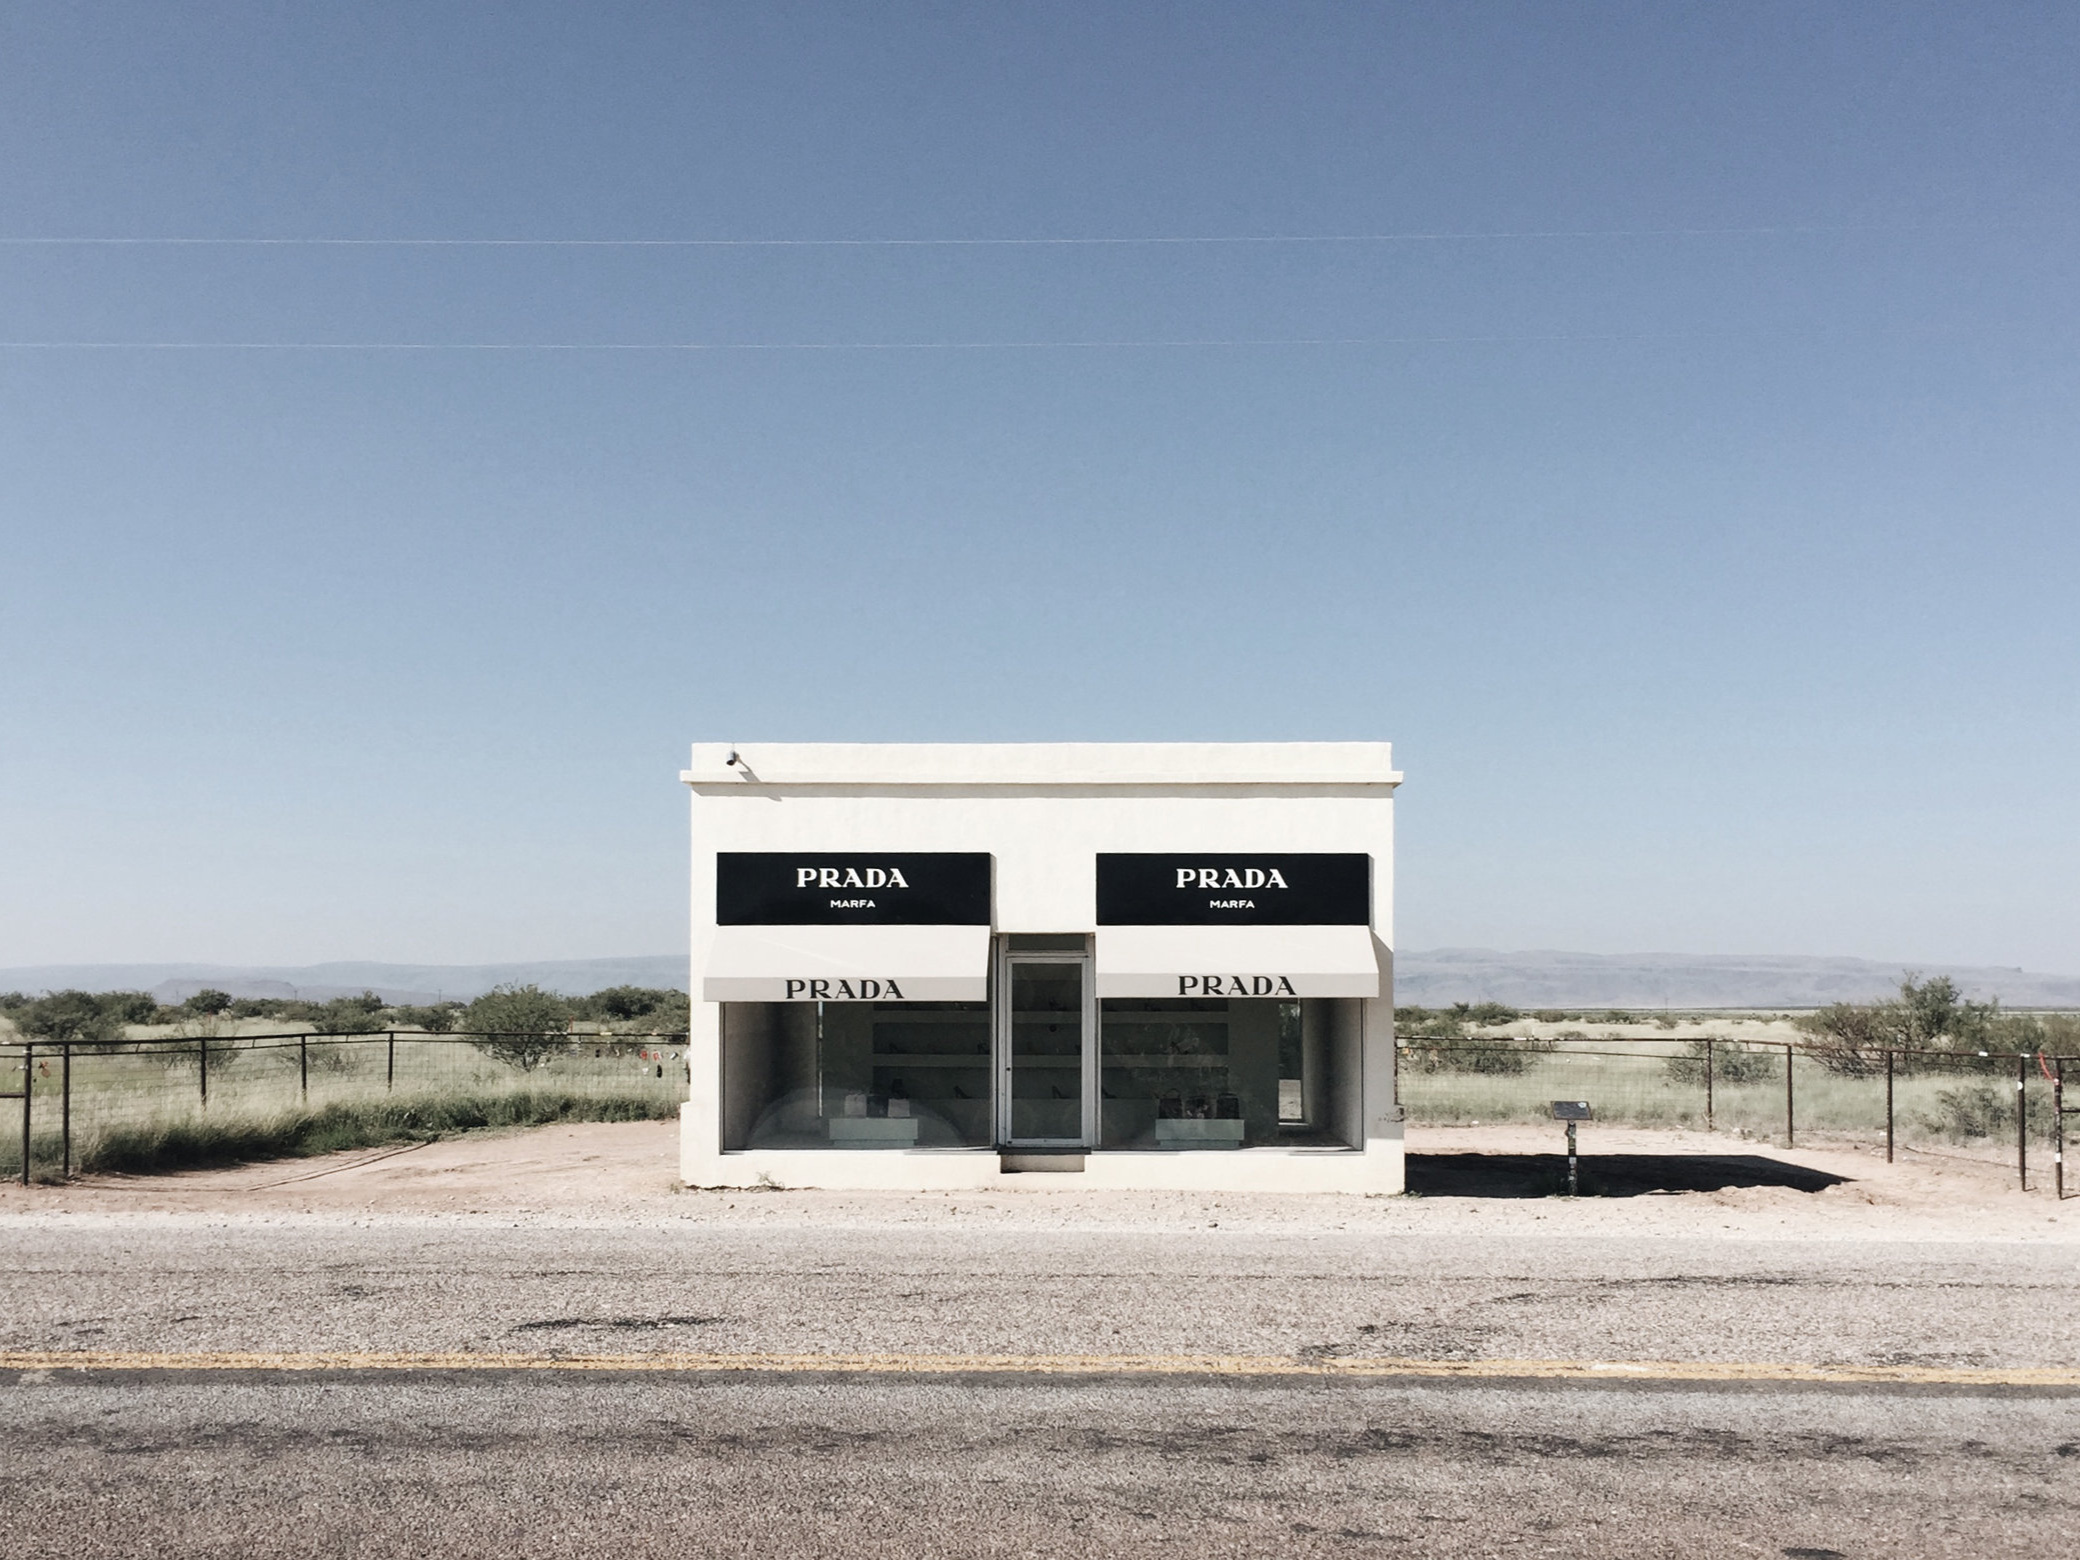 Marfa Prada Texas instillation art